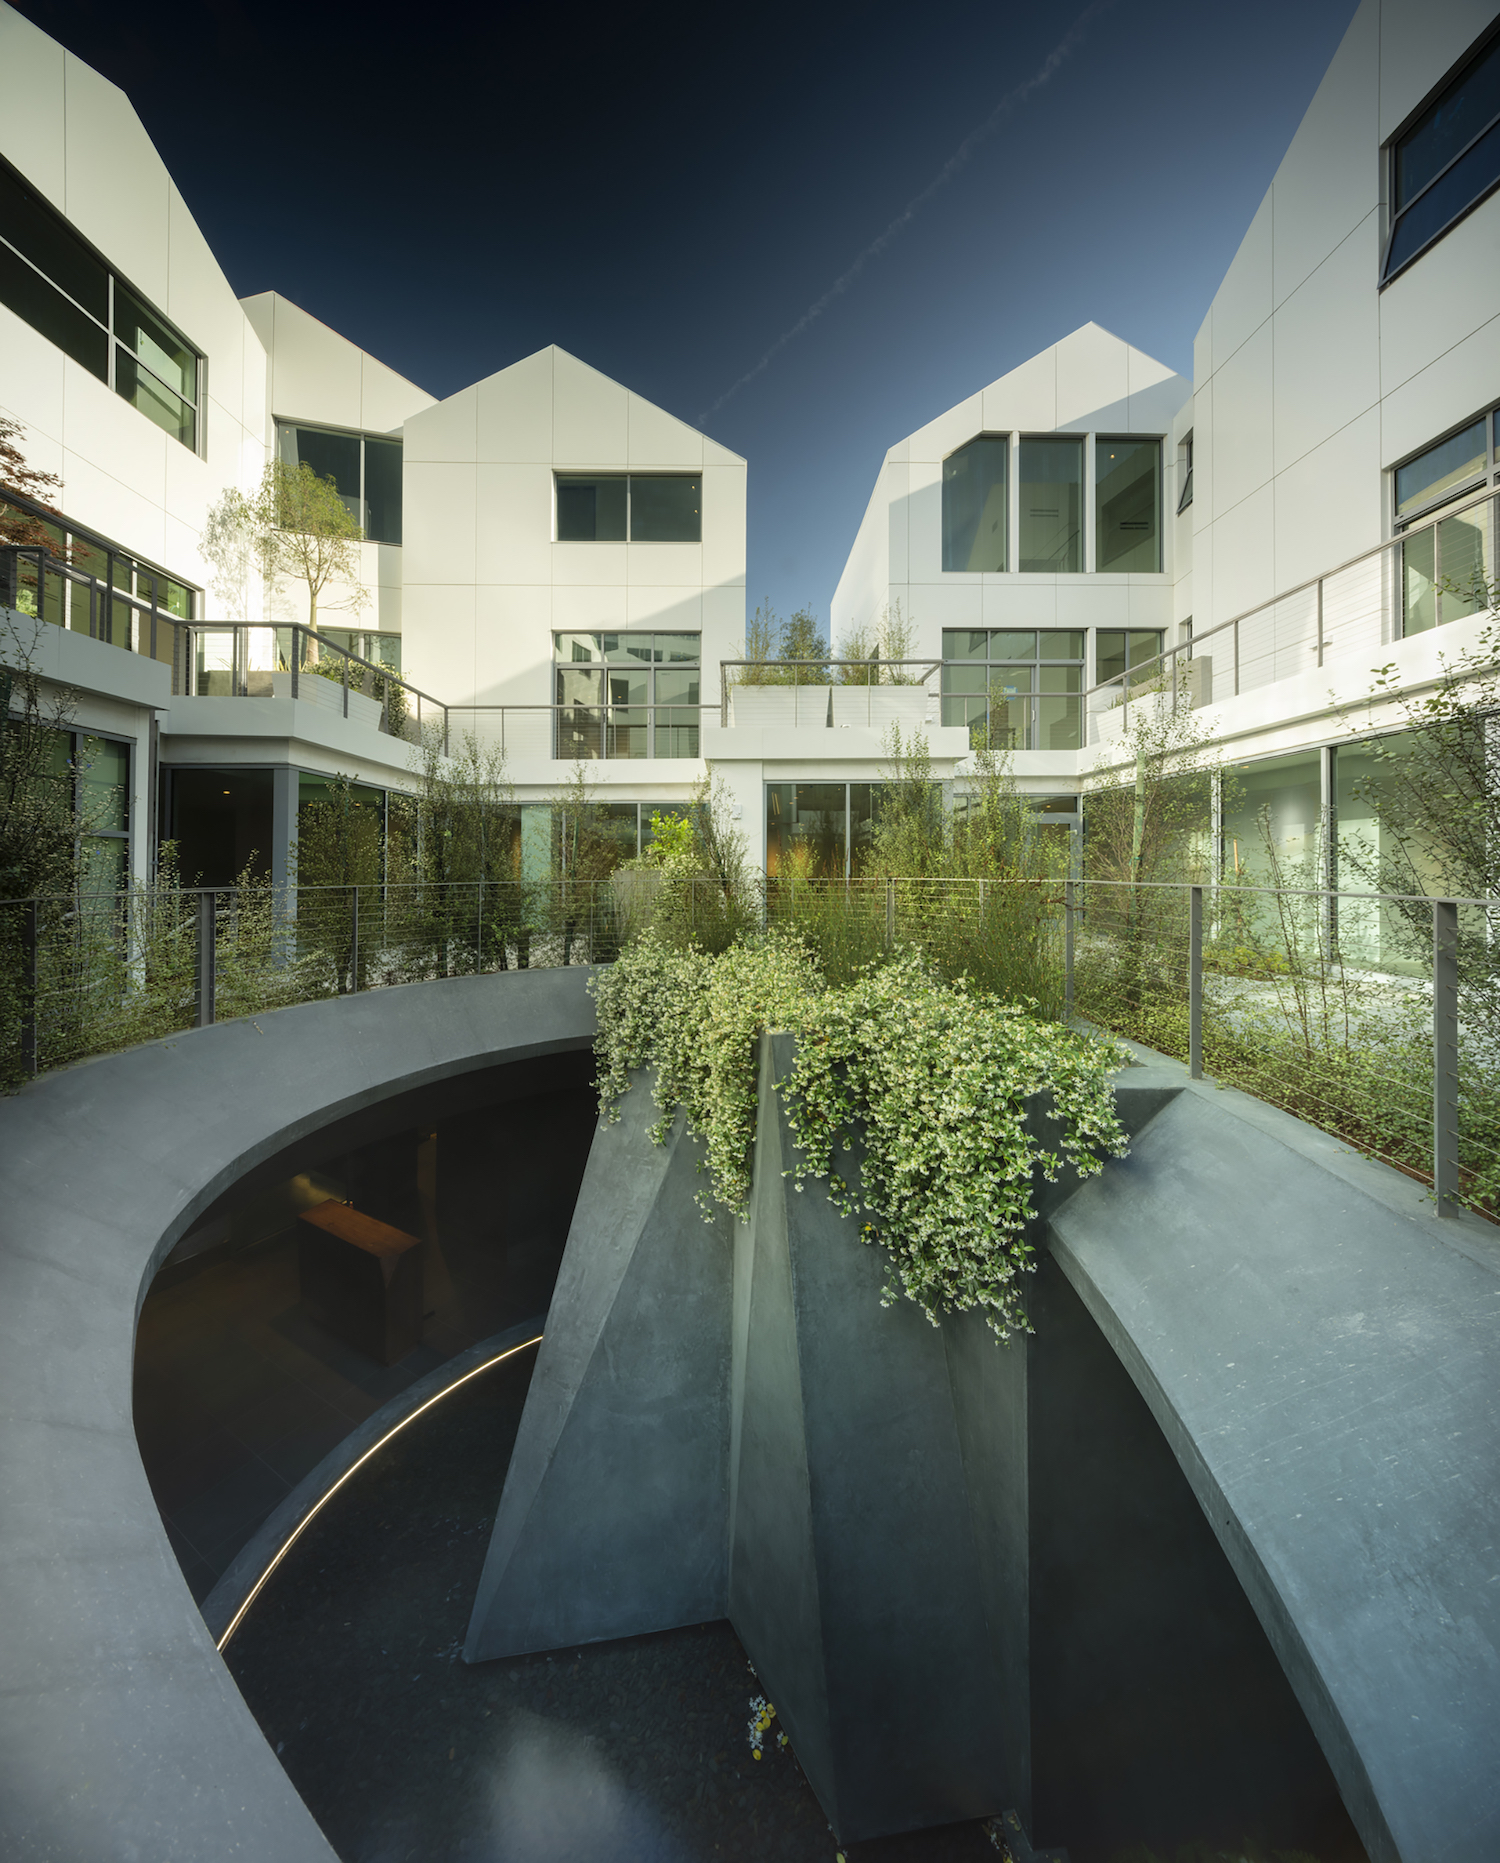 building and plants surrounding a courtyard with a concrete stairwell